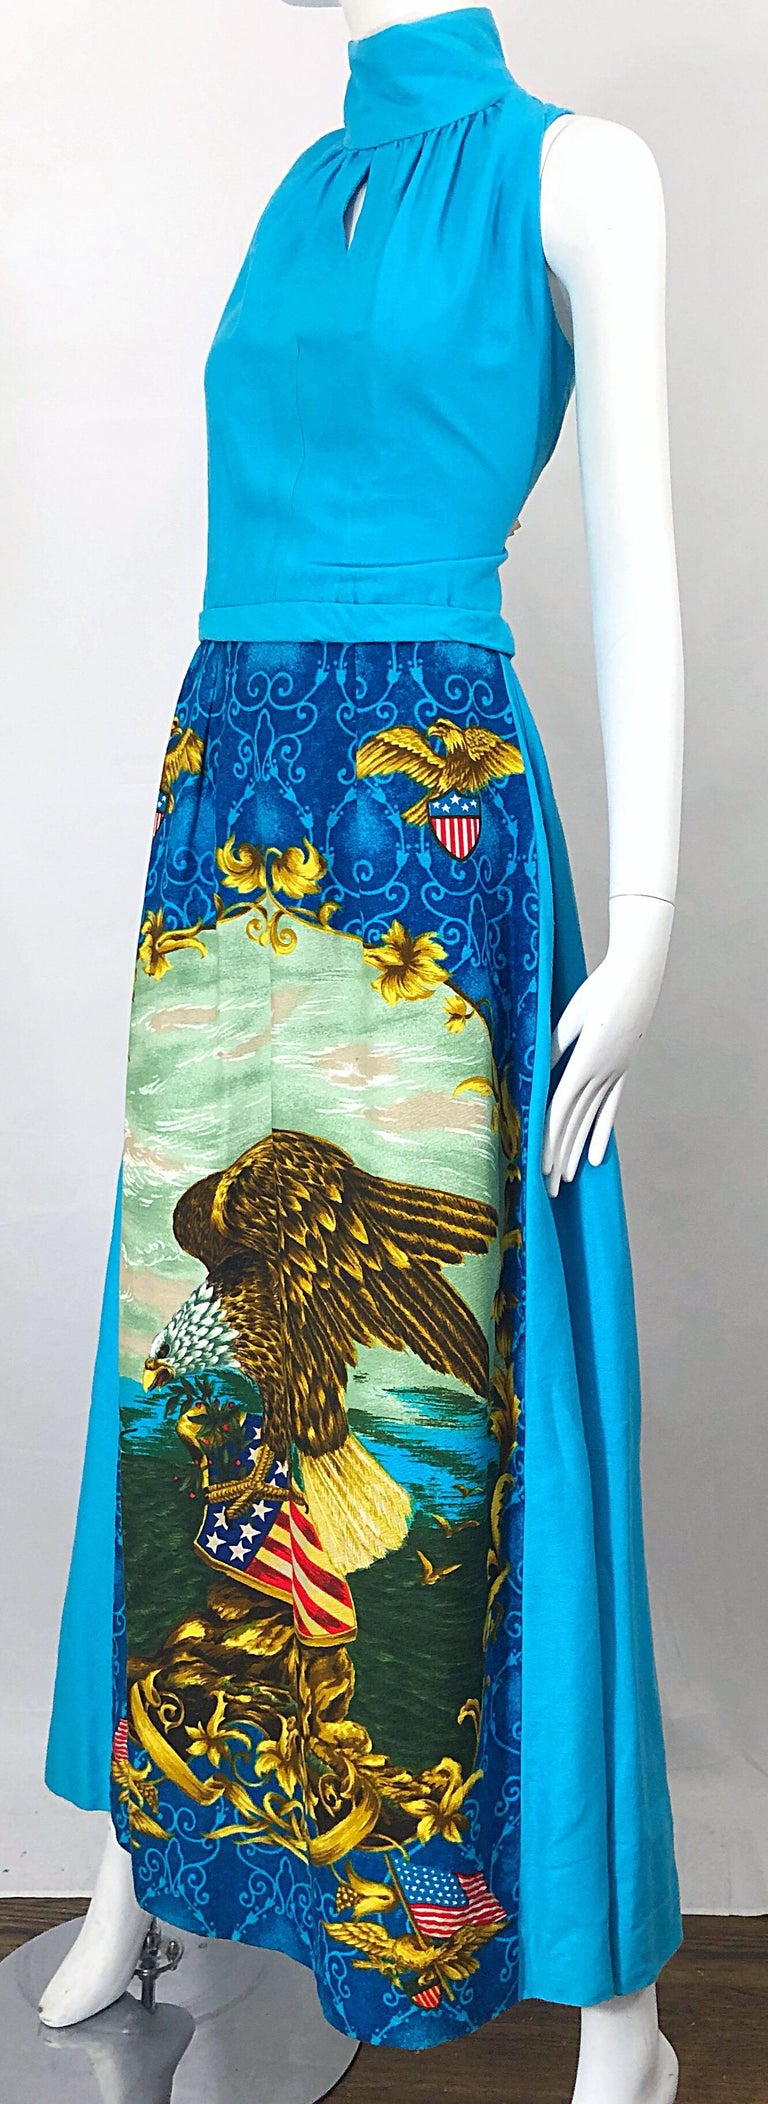 1970s Patriotic Blad Eagle USA Patriotic Red, White and Blue 70s Maxi Dress For Sale 8